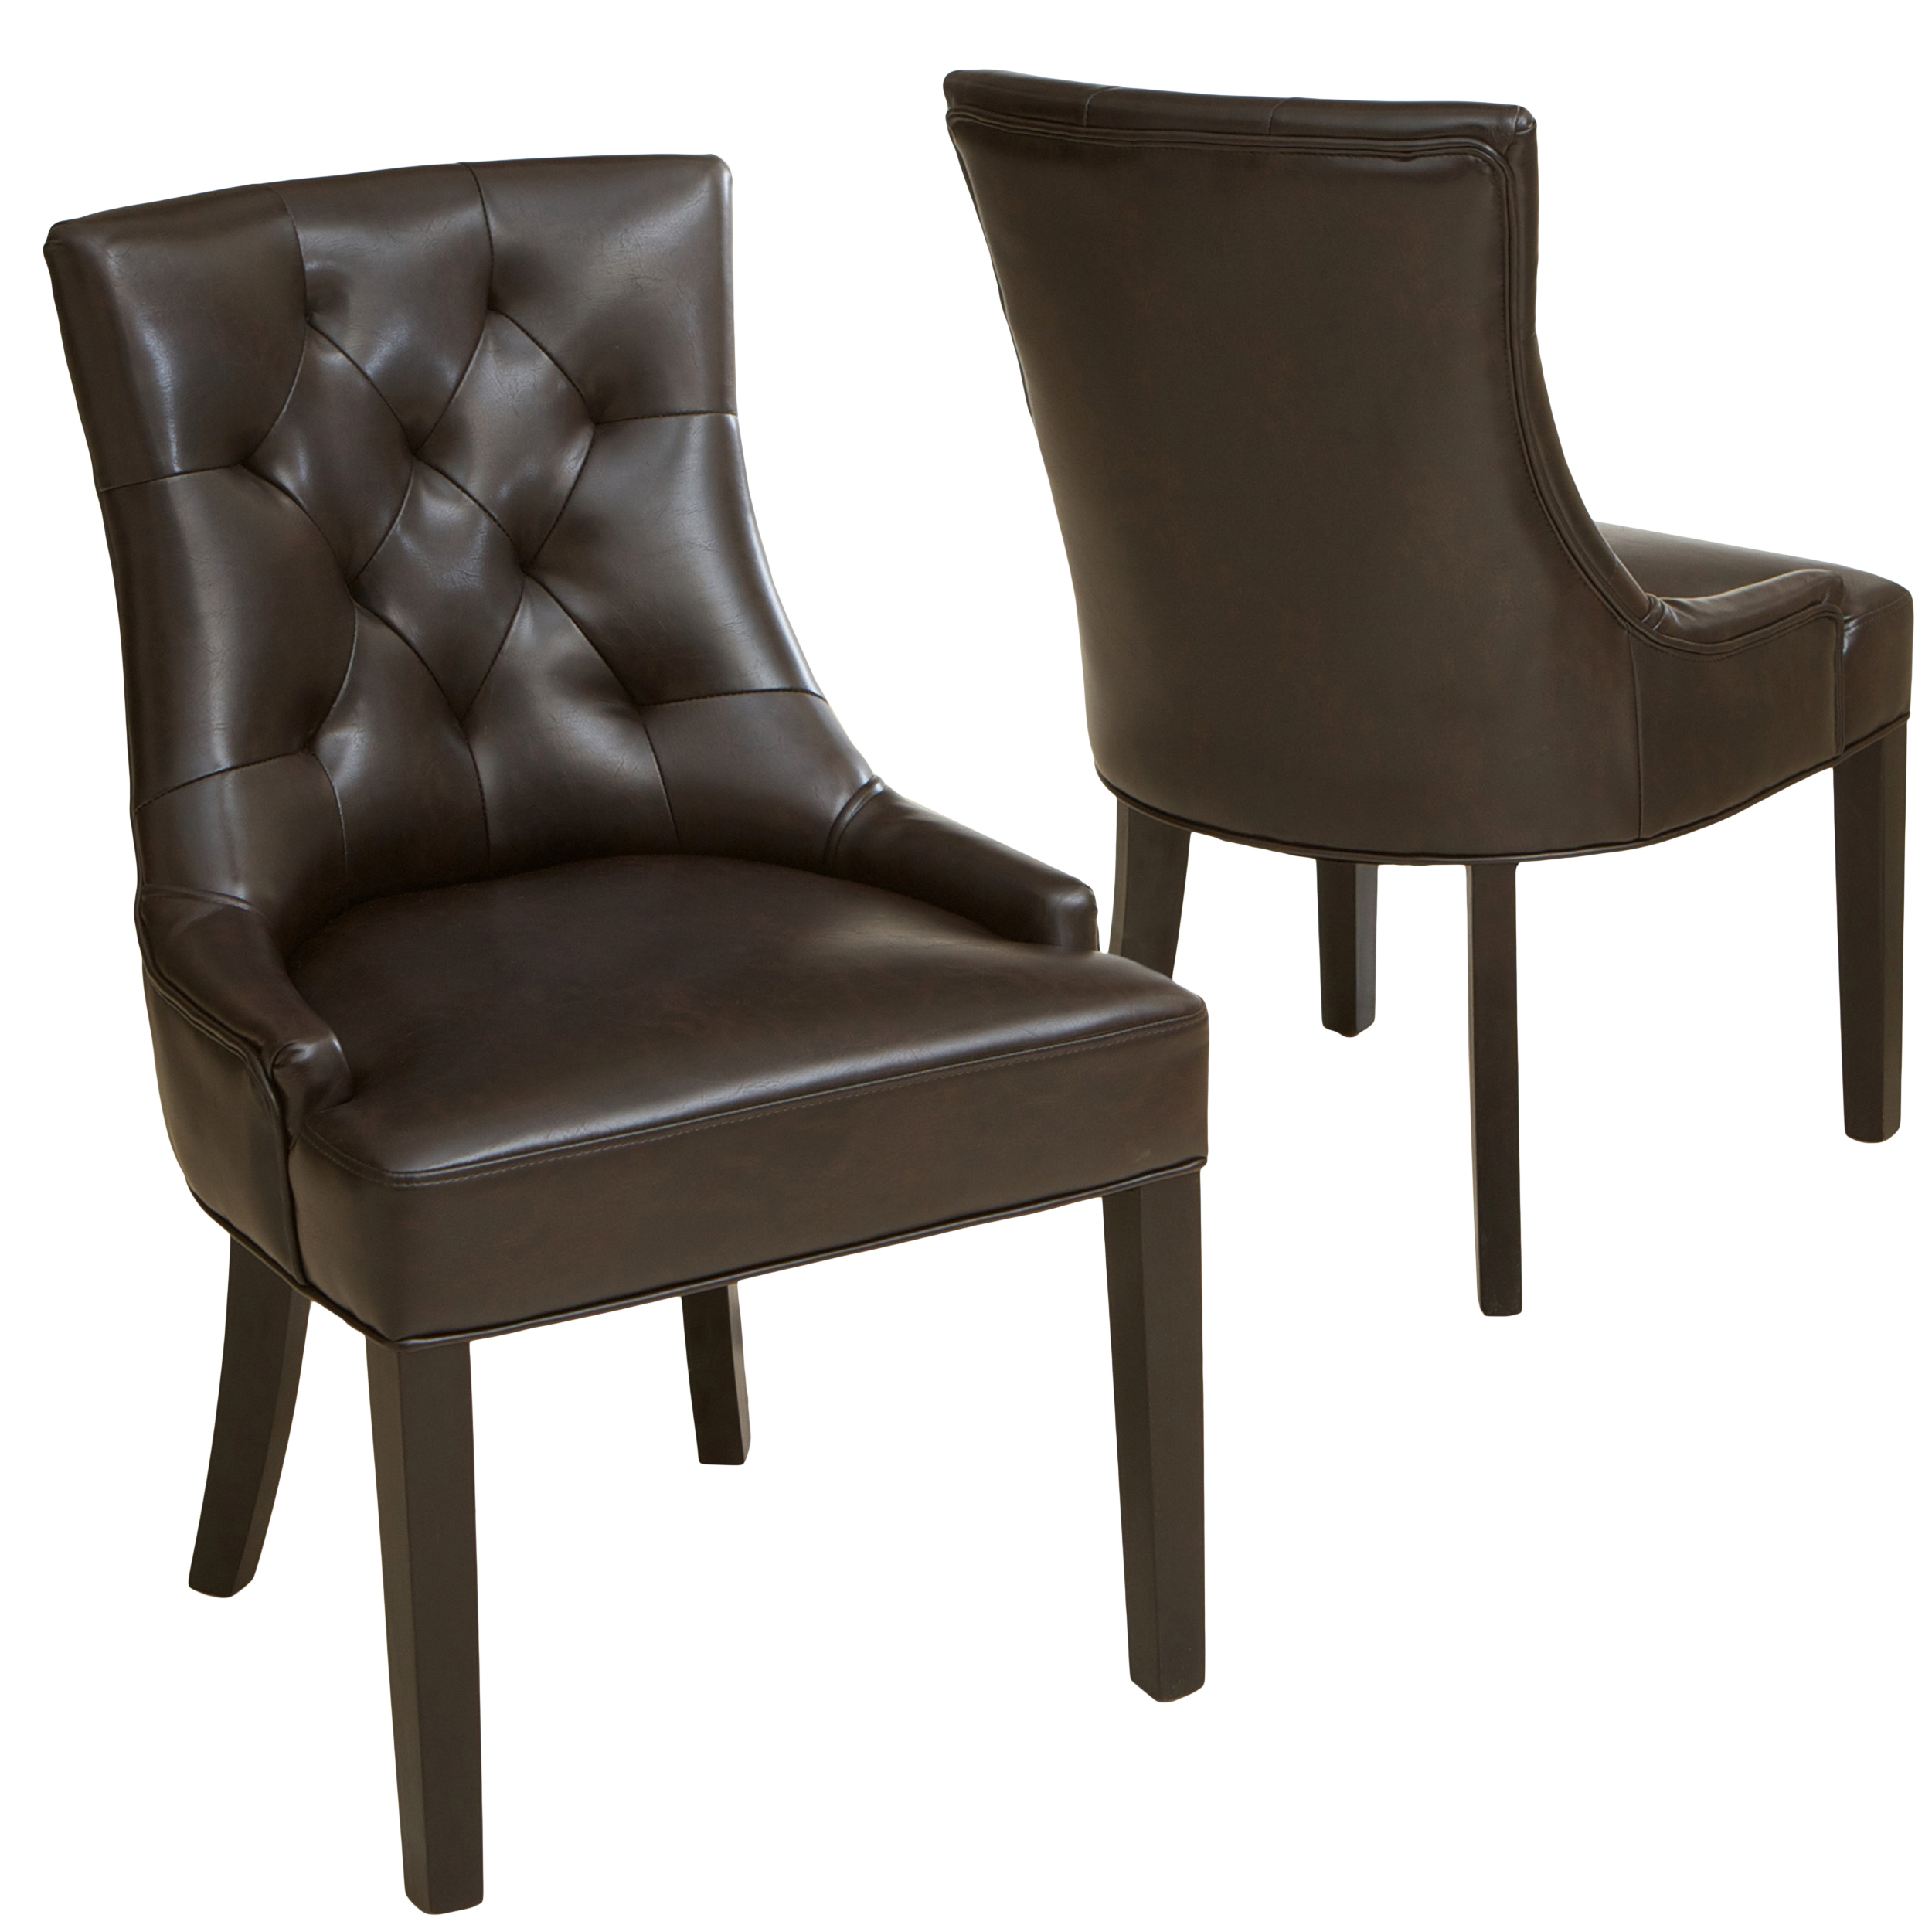 Denise Austin Home Erica Tufted Brown Bonded Leather Dining Chair (Set of 2)